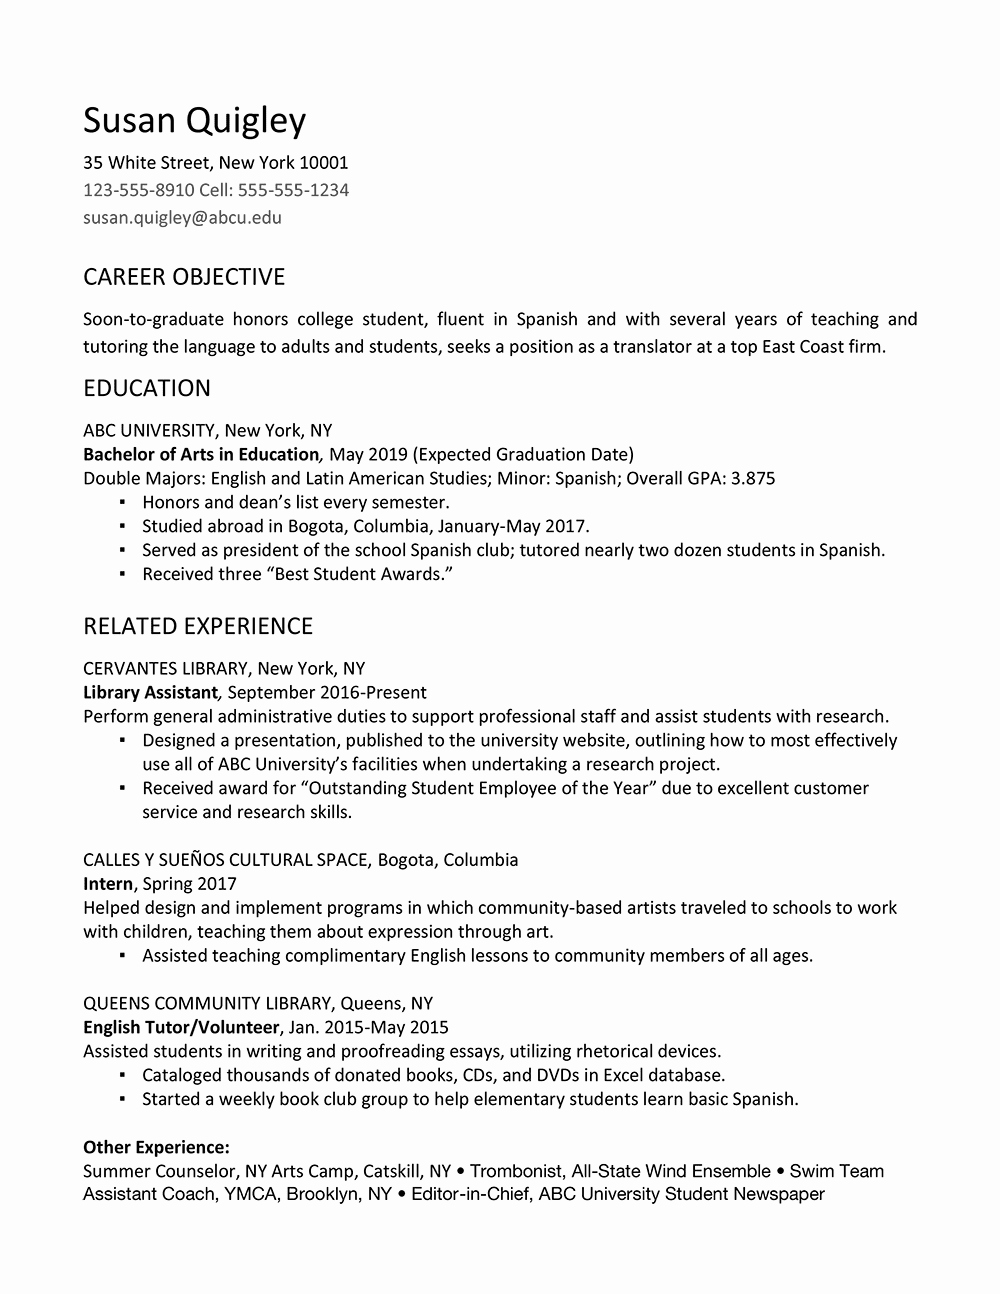 Sample Resume for College Graduate New Job Resume for Fresh Graduate College